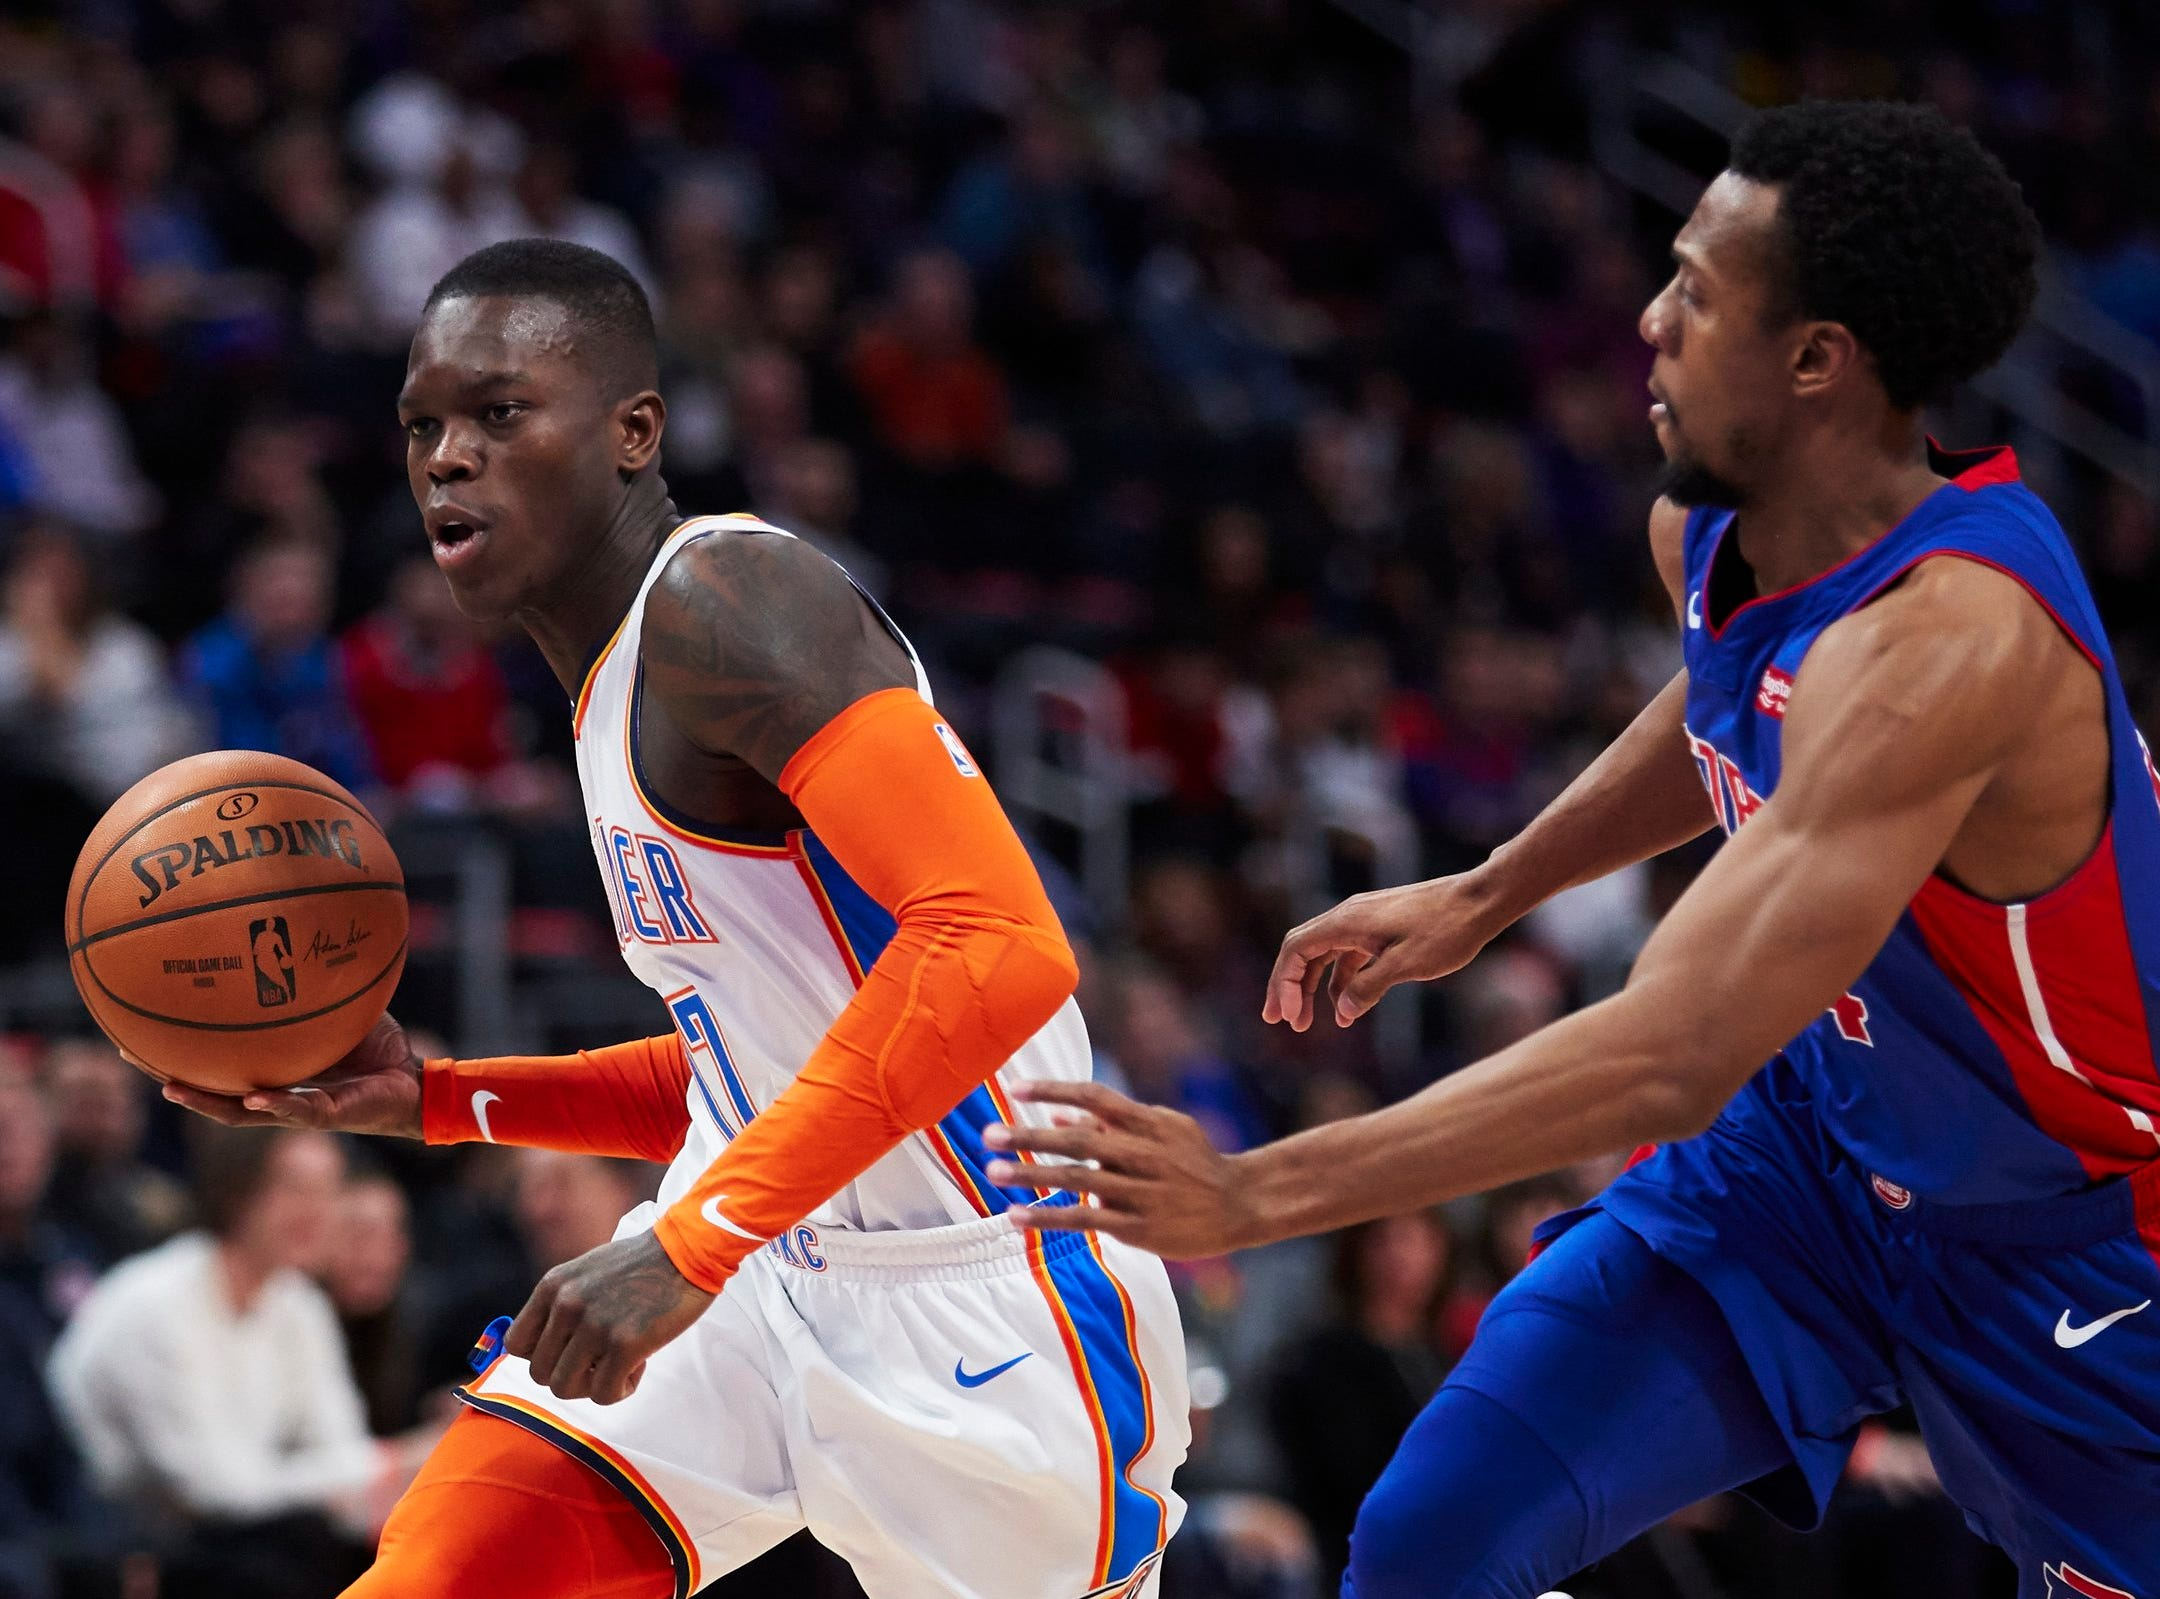 Oklahoma City Thunder guard Dennis Schroder (17) dribbles defended by Detroit Pistons guard Ish Smith (14) in the first half at Little Caesars Arena.